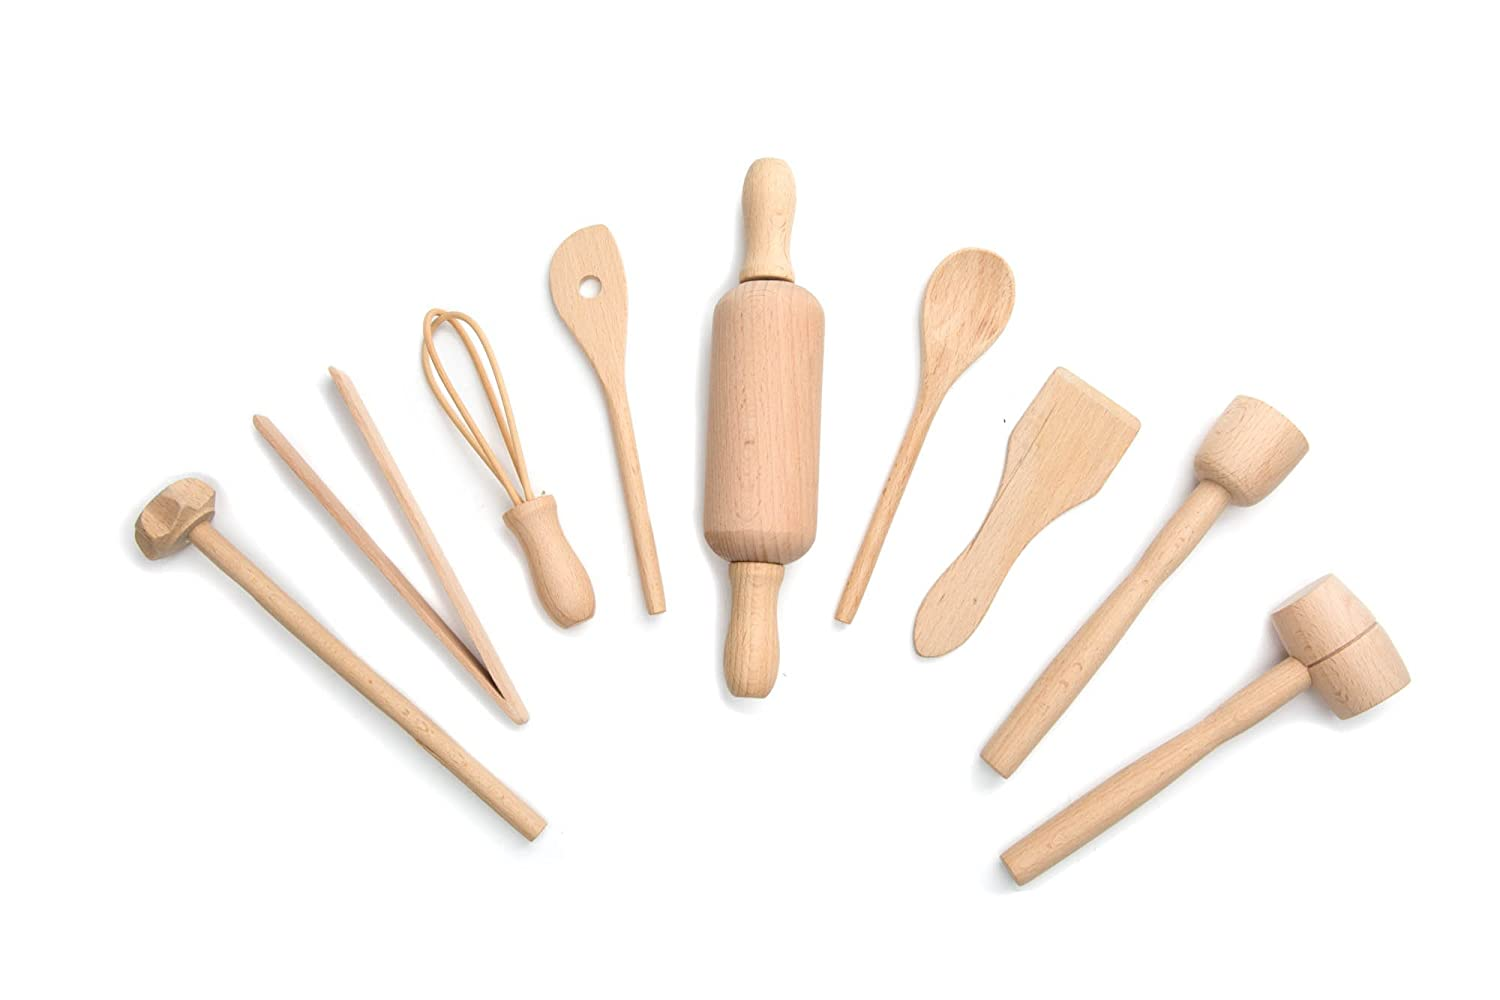 Fox Run 4932 Kids Cooking/Baking Tools Set, Wood, 9-Piece Fox Run Craftsmen